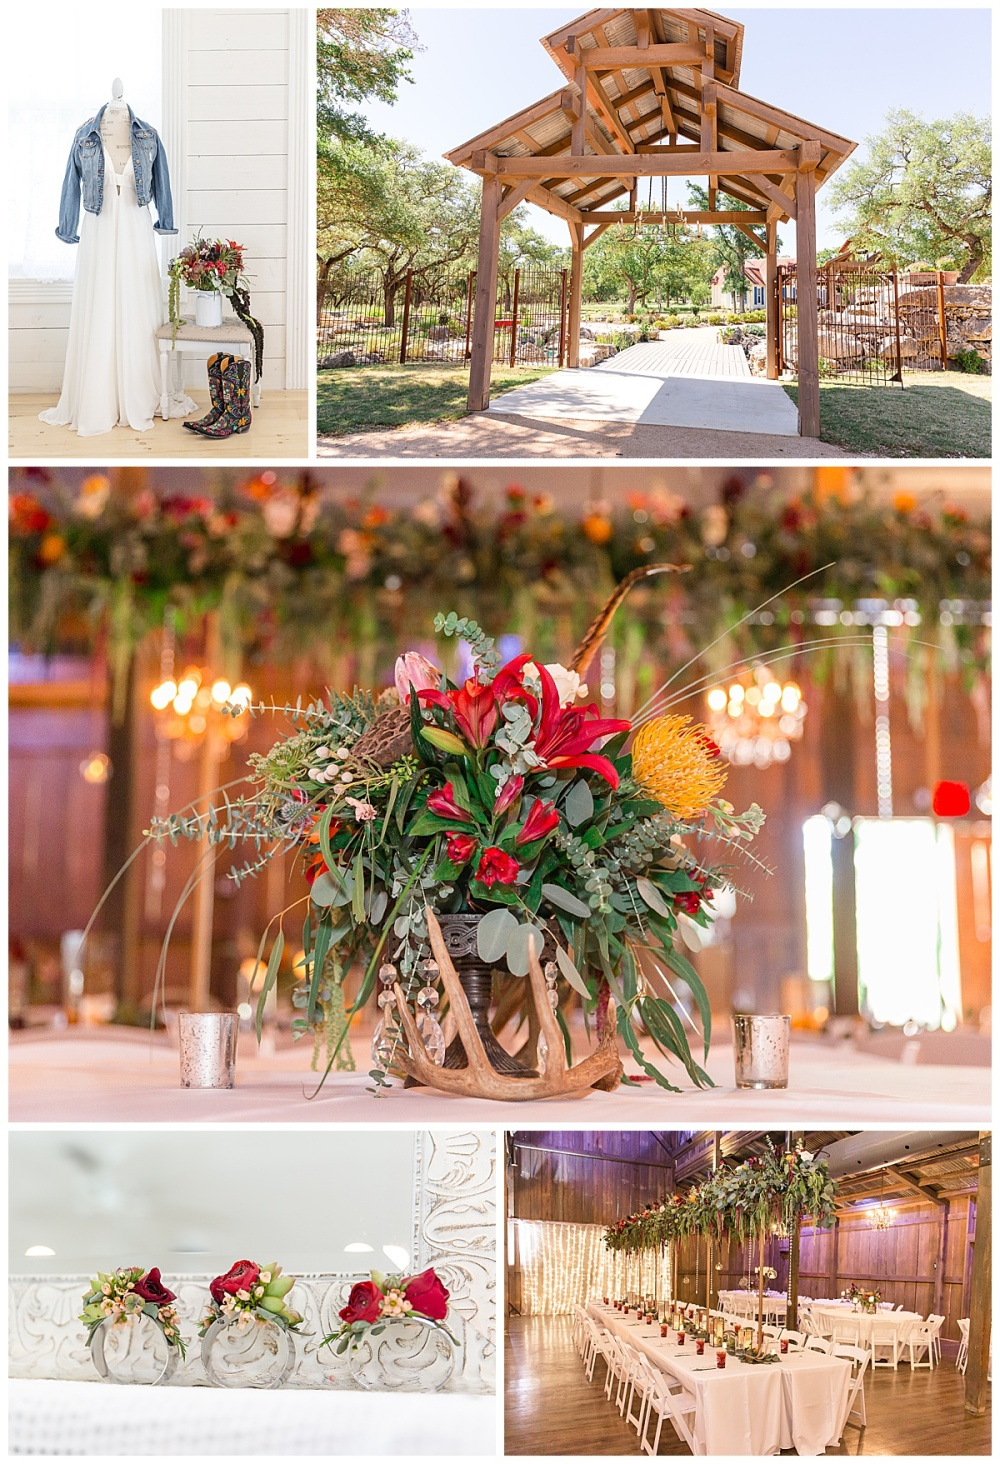 Eagle-Dancer-Ranch-Boerne-Texas-Wedding-Party-Barn-Carly-Barton-Photography_0012.jpg